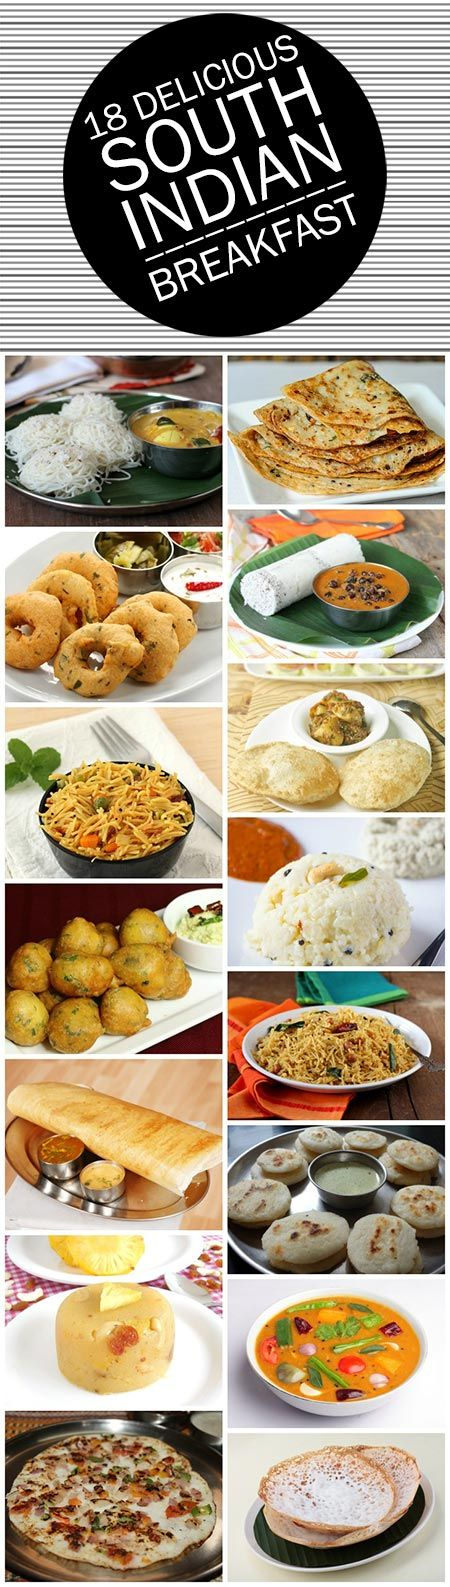 18 delicious south indian breakfast recipes you must try desayuno 18 delicious south indian breakfast recipes you must try forumfinder Gallery